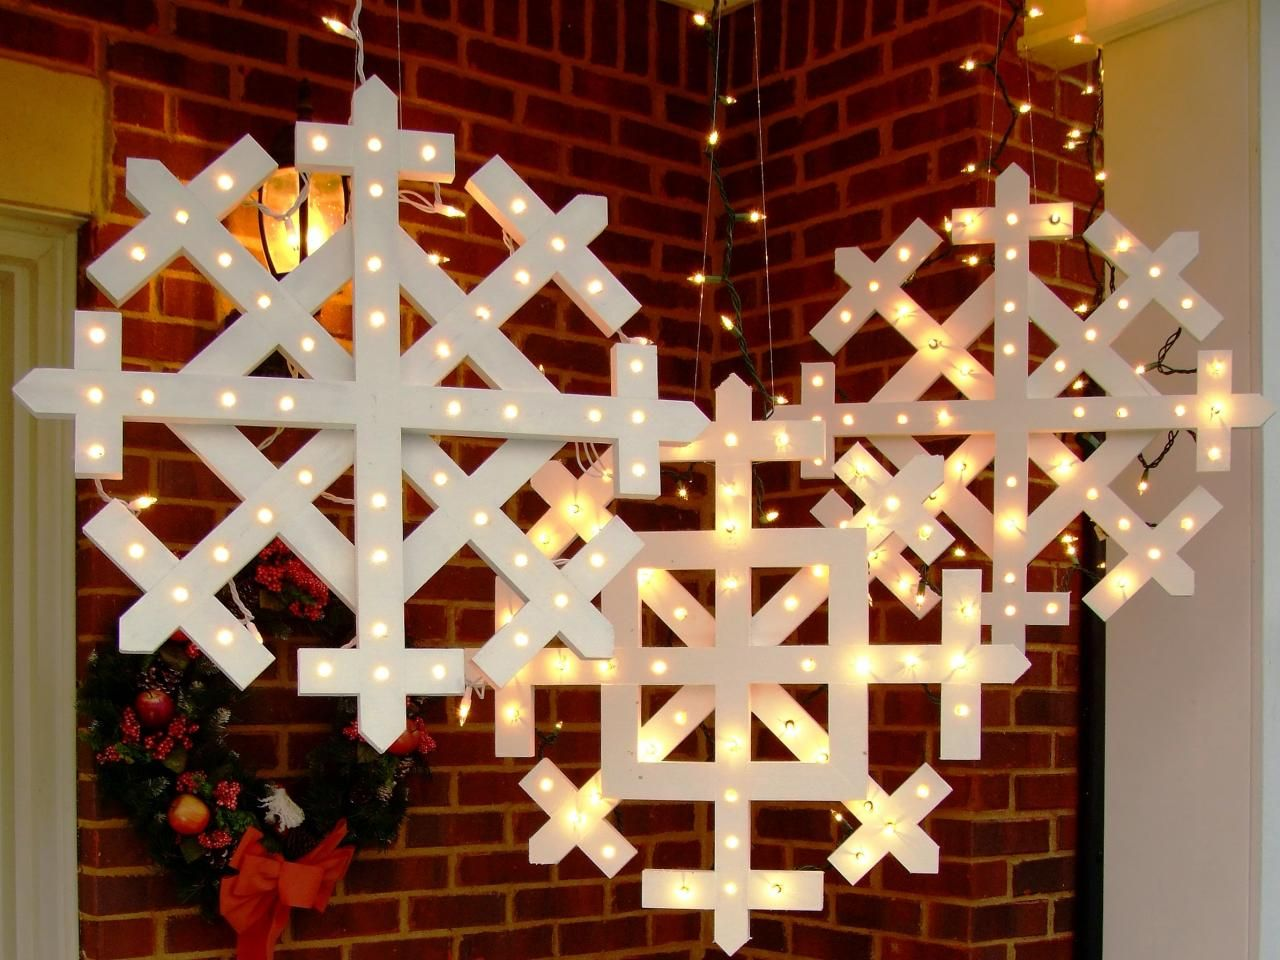 Diy christmas decorations 2014 - How To Make Wooden Snowflakes With Lights Holiday Ideaschristmas Ideasdiy Outdoor Christmas Decorationsdiy